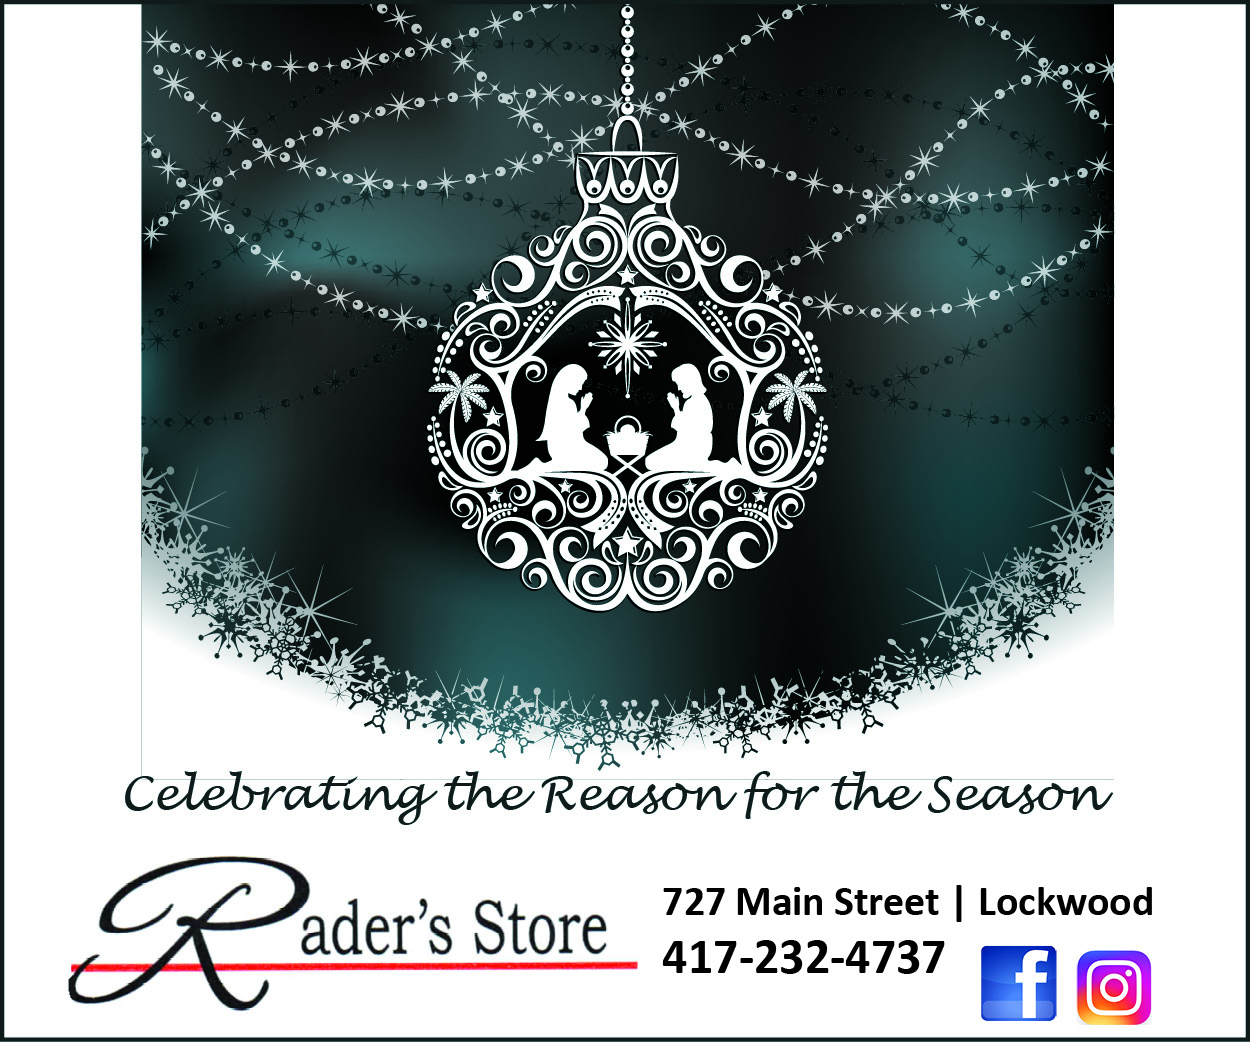 Raders Christmas Greeting 2019